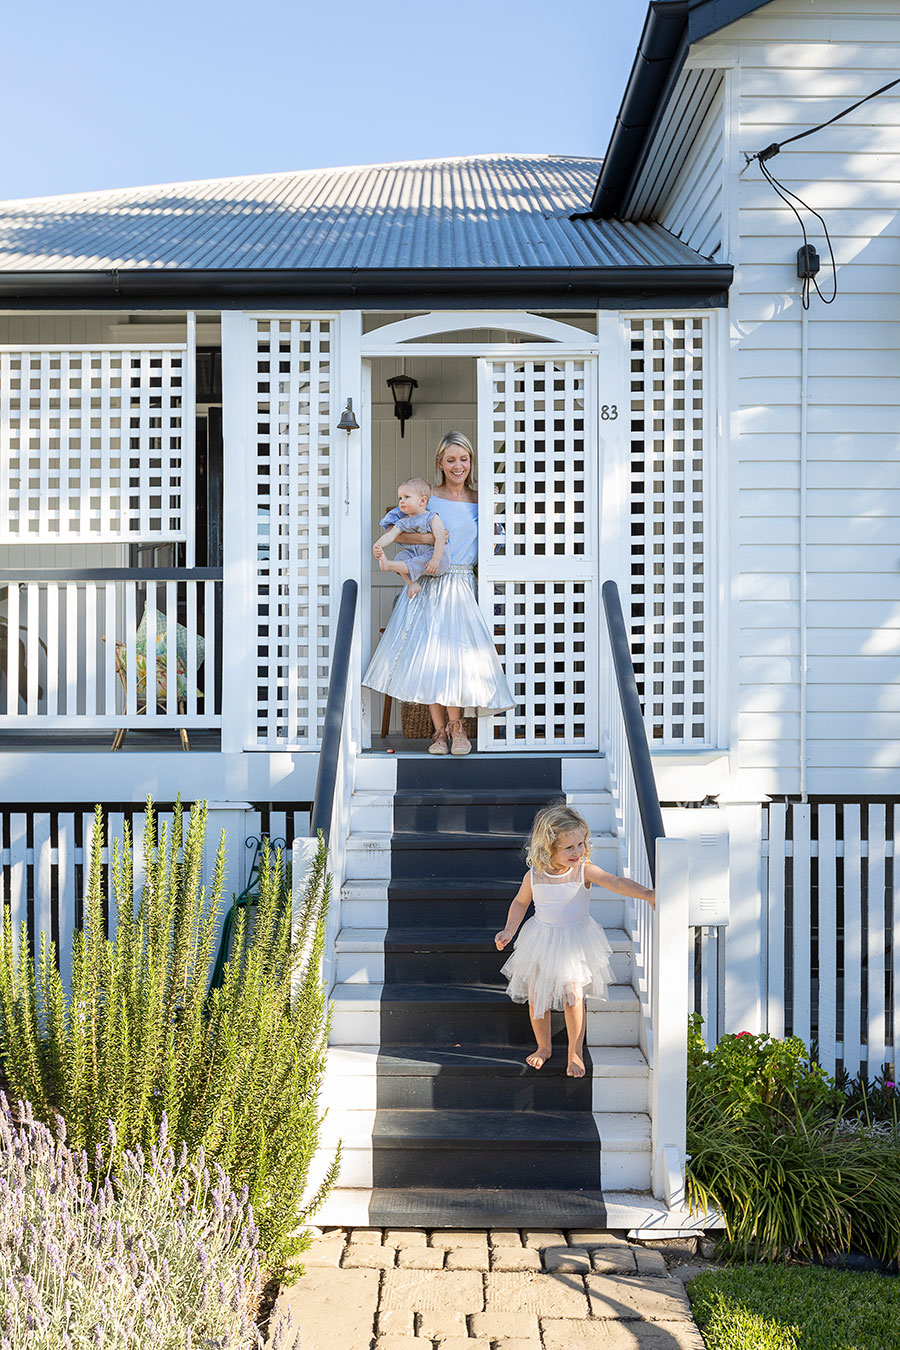 Renovated Queenslander home front stairs